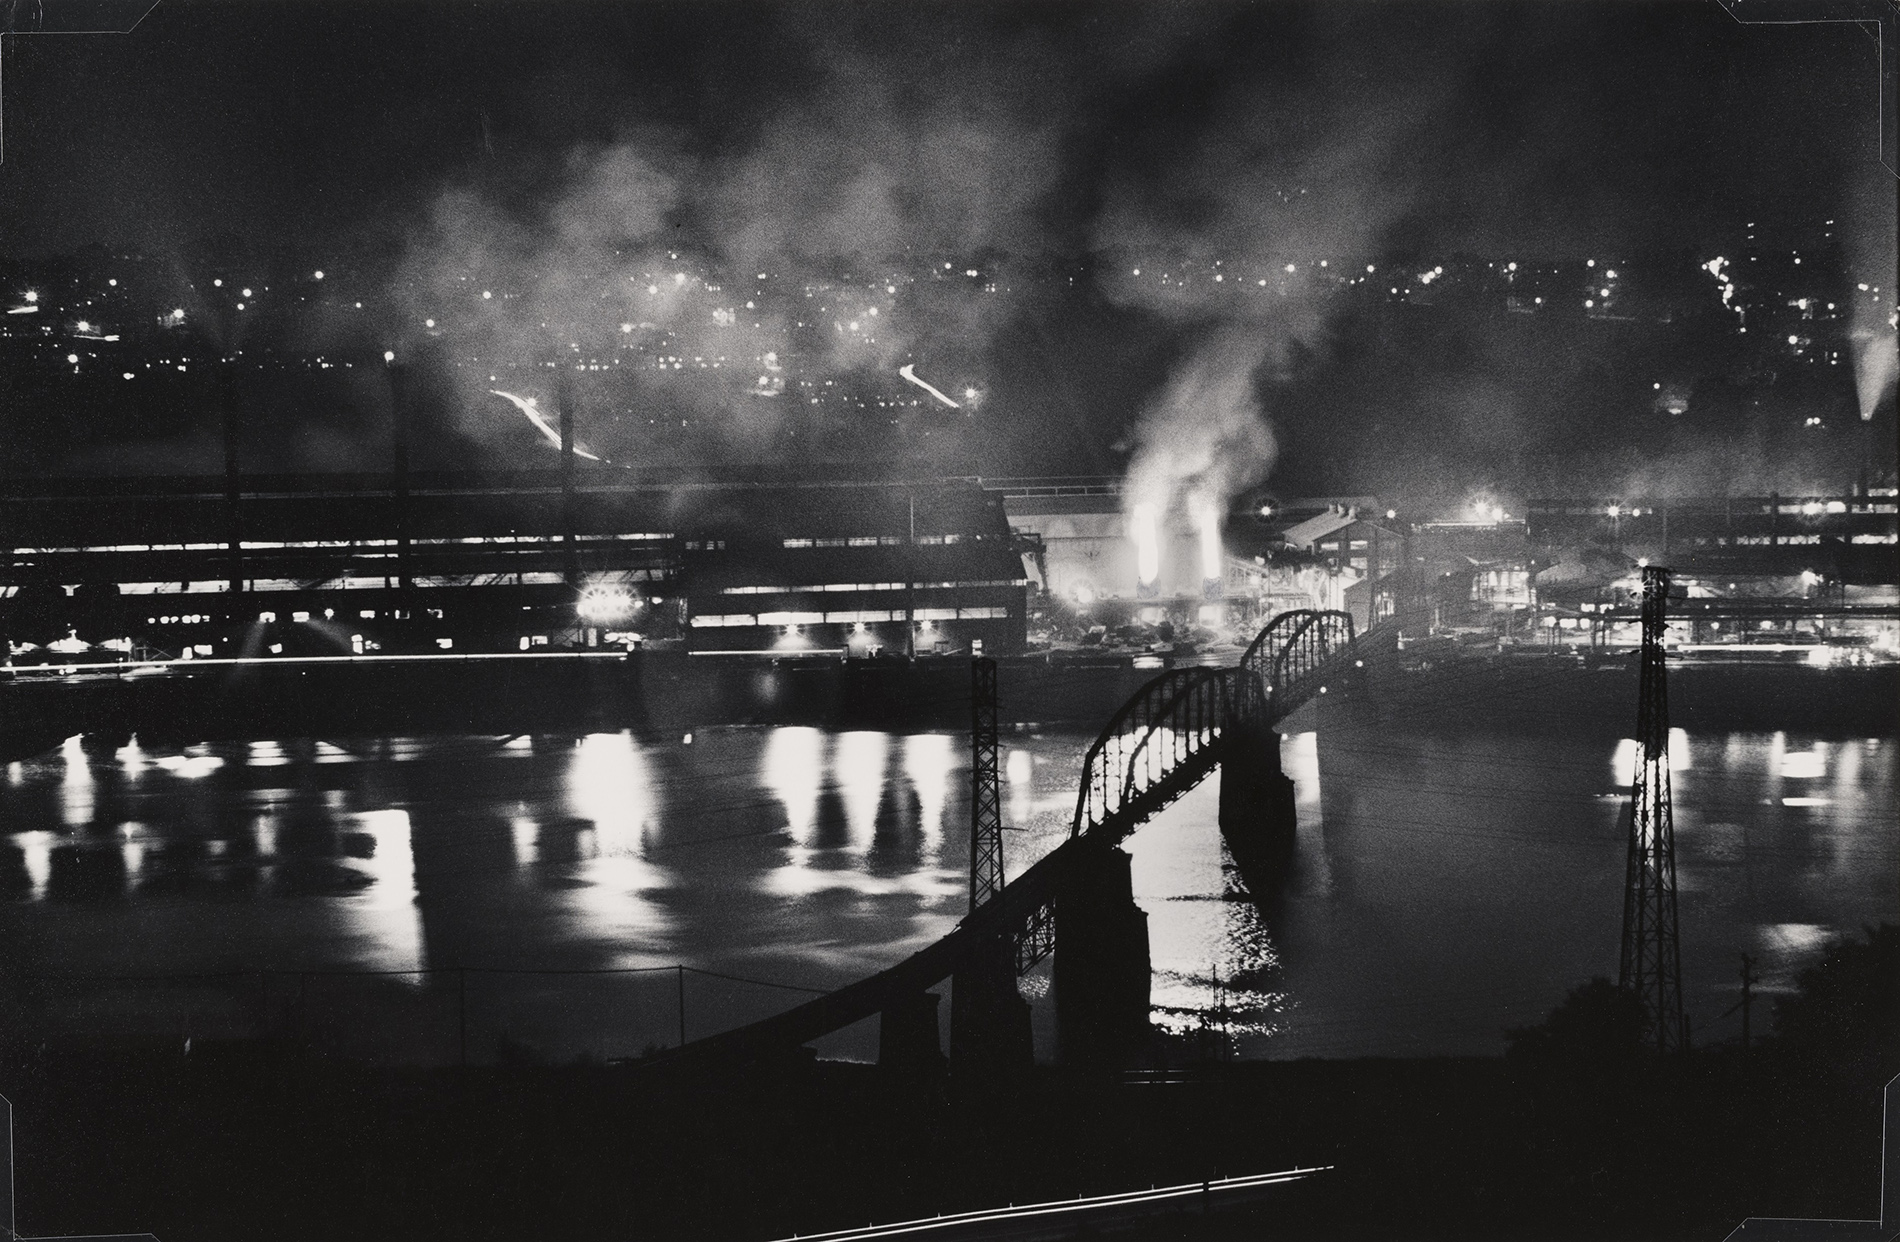 W. Eugene Smith, USA, 1918-1978 National Tube Company works, U.S. Steel Corporation, McKeesport, and Union Railroad Bridge over the Monongahela River, 1955-1957 gelatin silver print,  Carnegie Museum of Art, Pittsburgh Gift of the Carnegie Library of Pittsburgh, Lorant Collection. © W. Eugene Smith / Magnum Photos